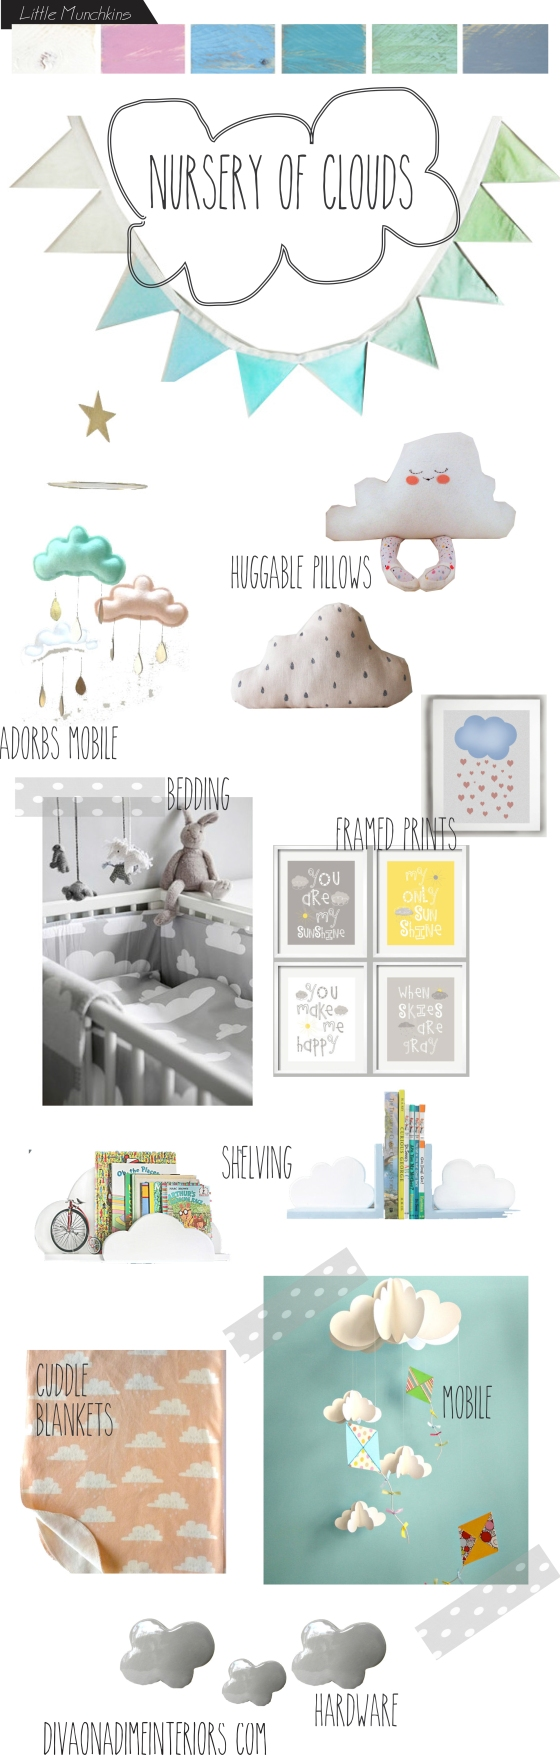 nursery of clouds diva on a dime interiors